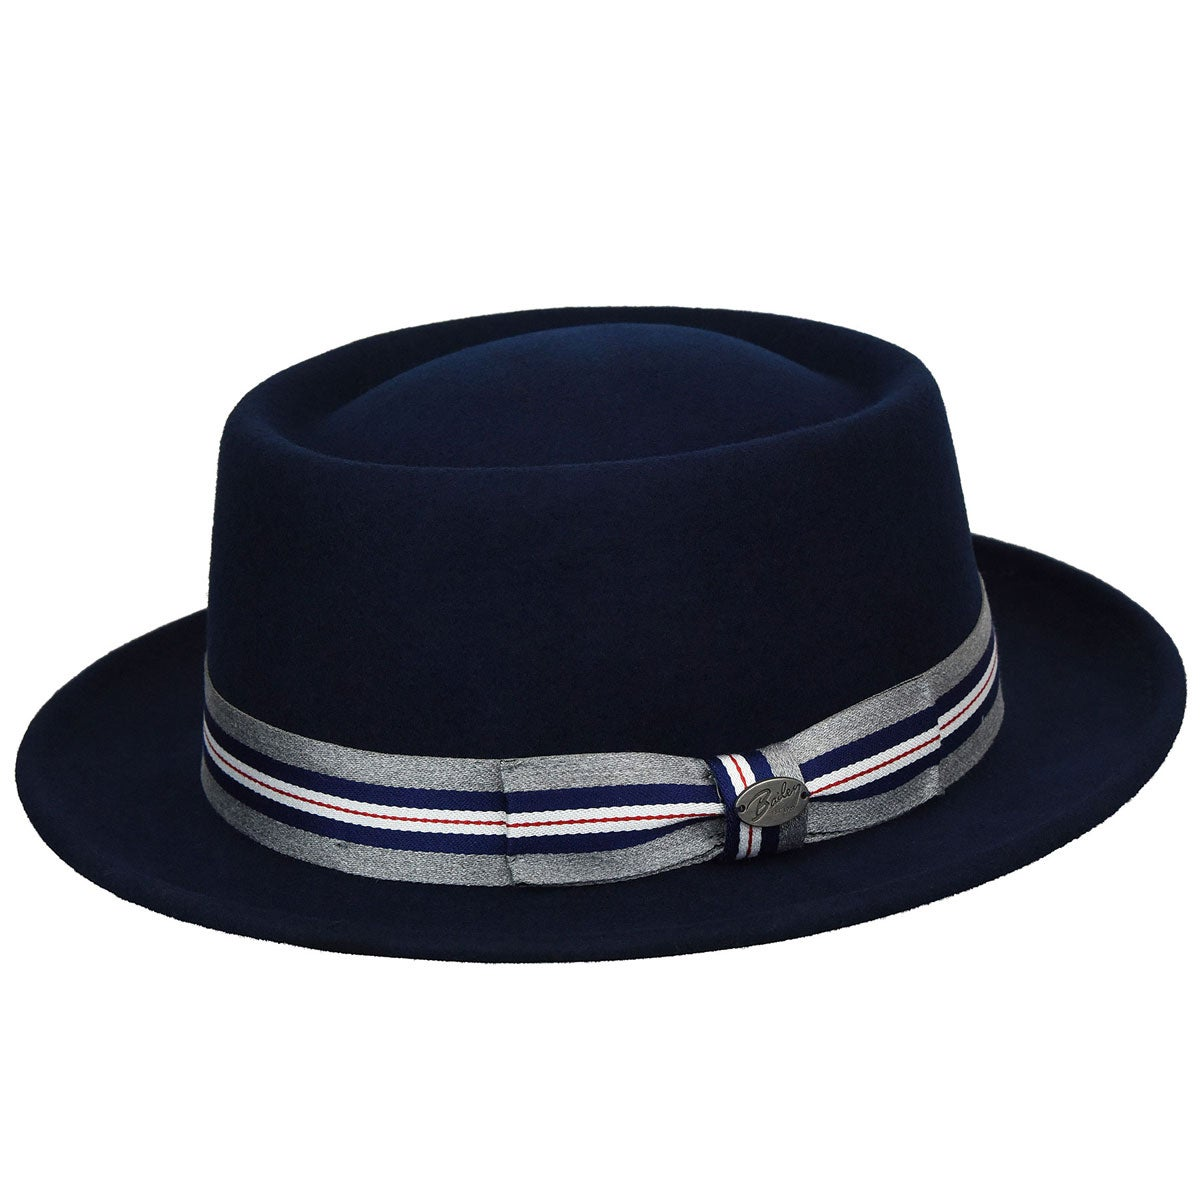 1930s Mens Hat Fashion Klaxon $64.00 AT vintagedancer.com